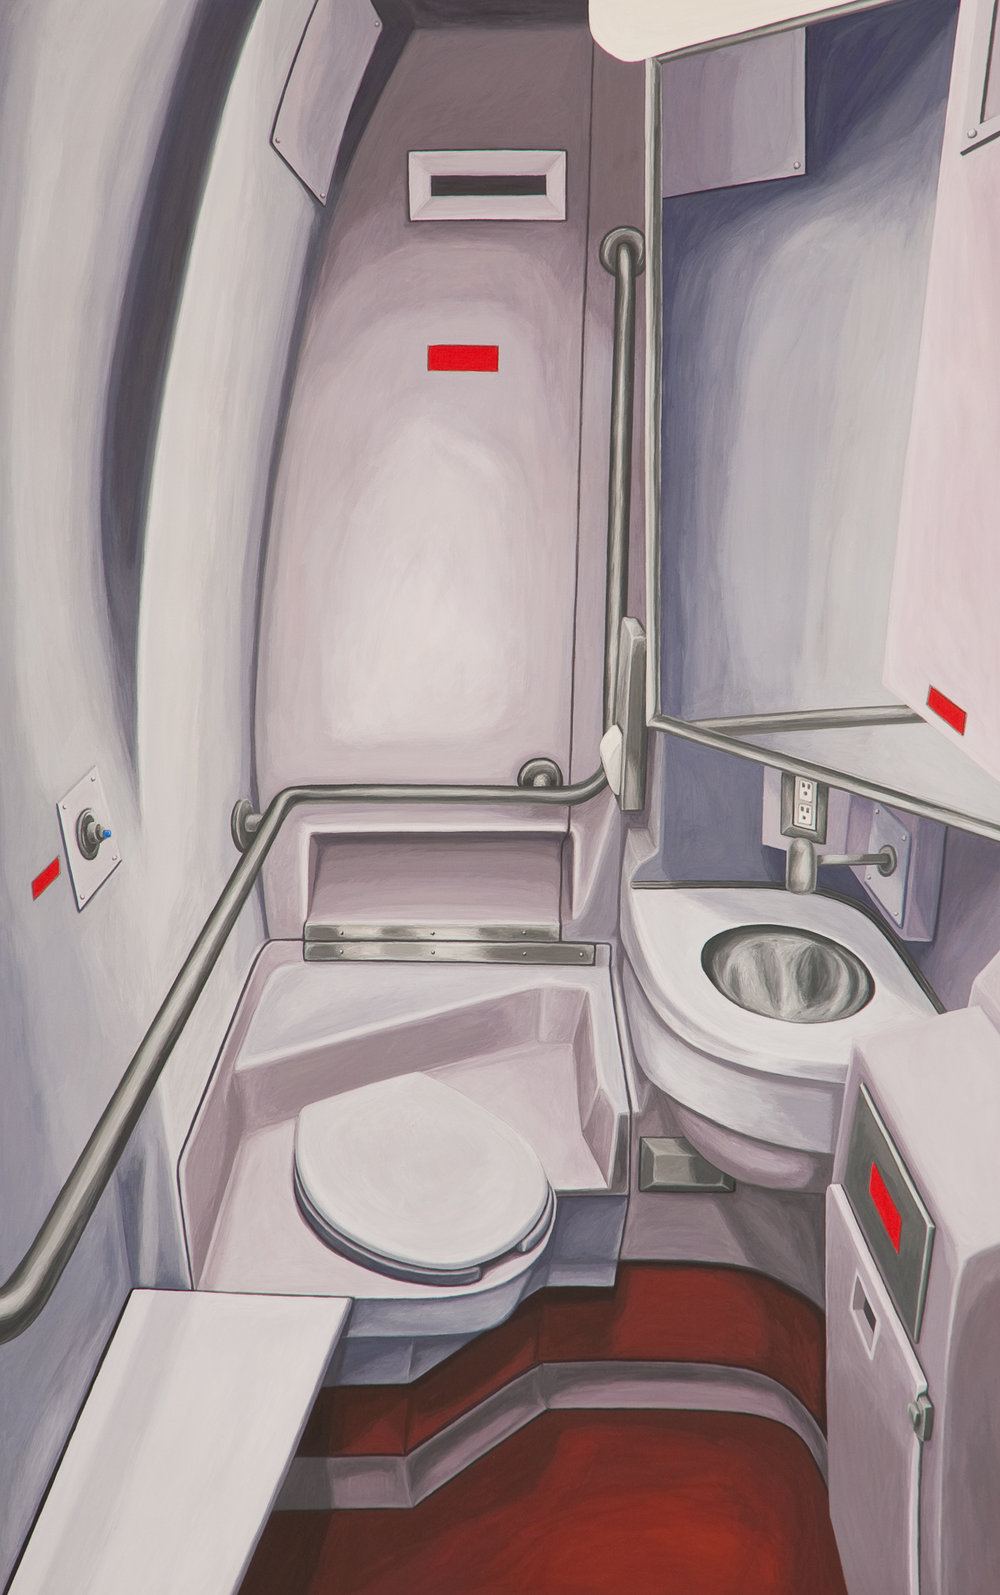 Bathroom #4, 2010, Gouache on Paper, 15 X 22 inches